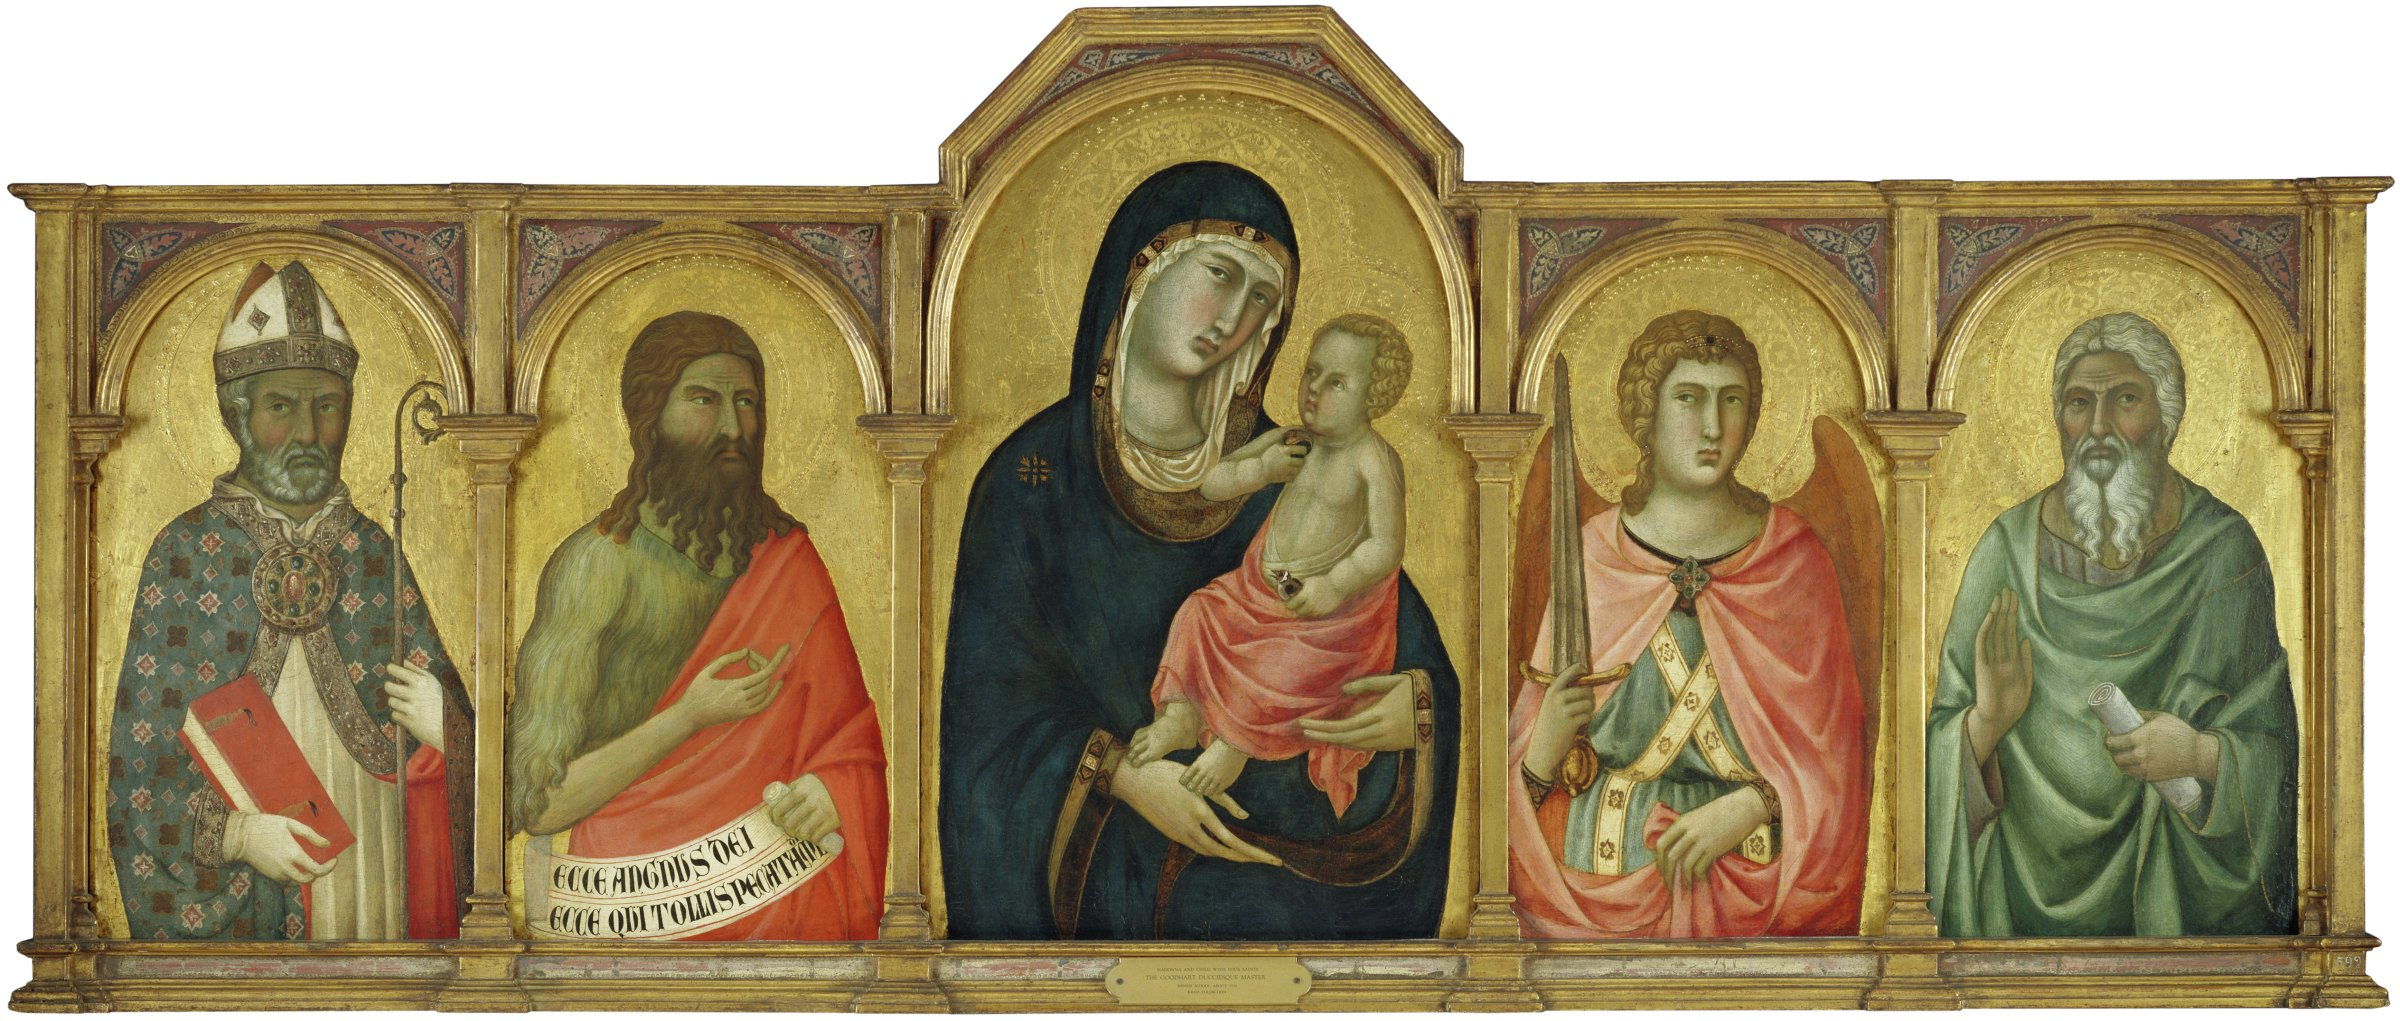 The Madonna holds the Christ Child in her arms. The Child holds her veil in one hand and in the other, a goldfinch, a symbol of the Passion. The Madonna and Child are flanked by two saints on either side: a bishop saint and Saint John on the left and Saint Michael and an unidentified saint on the right.